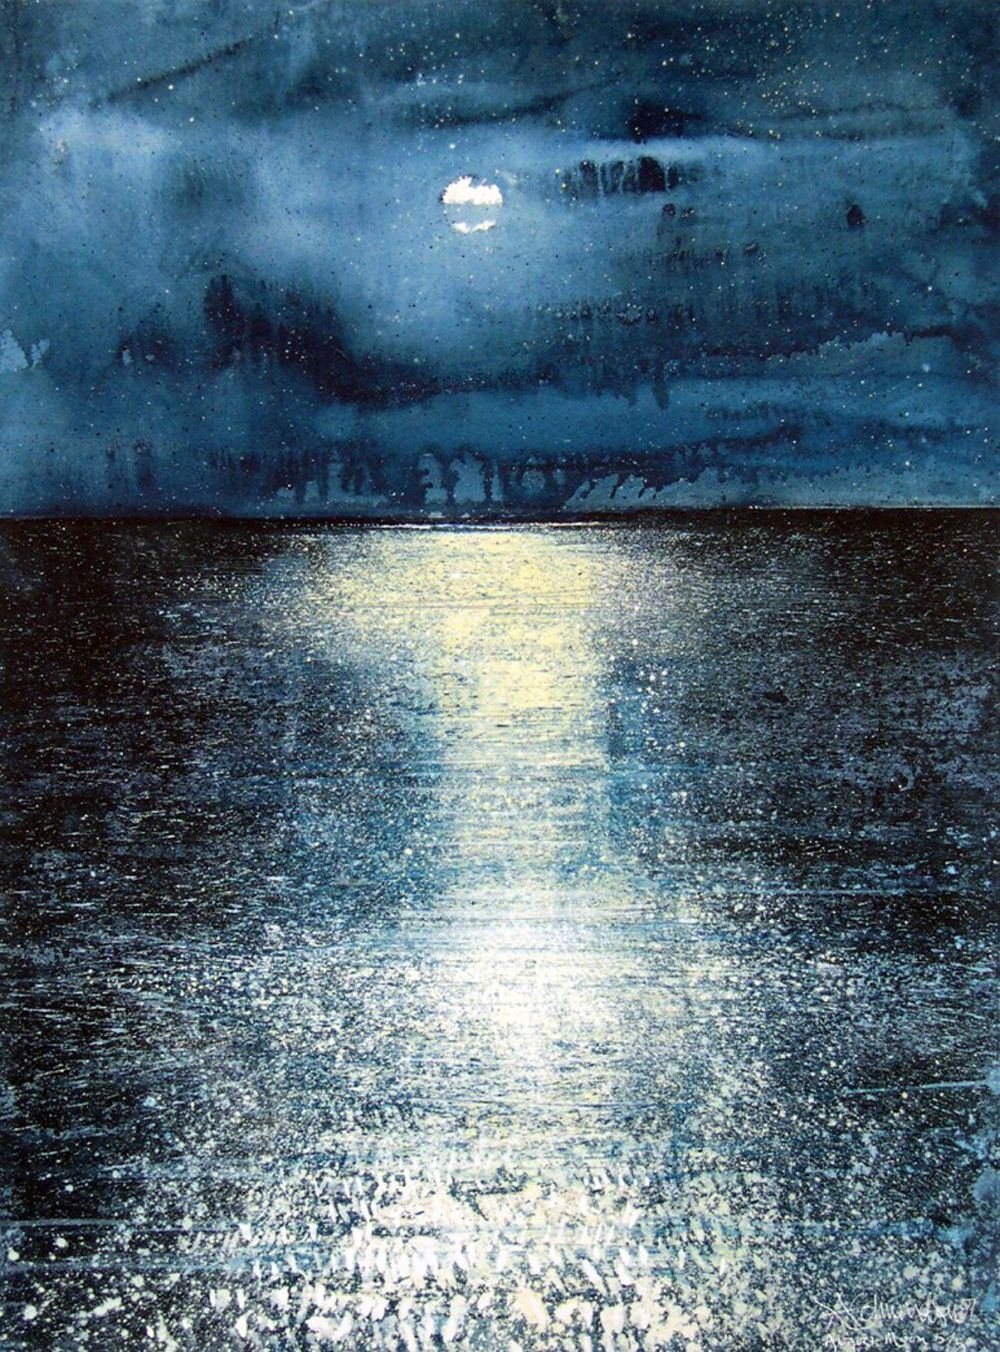 Stewart Edmondson  August Moon, 56cm x 76cm, 2012